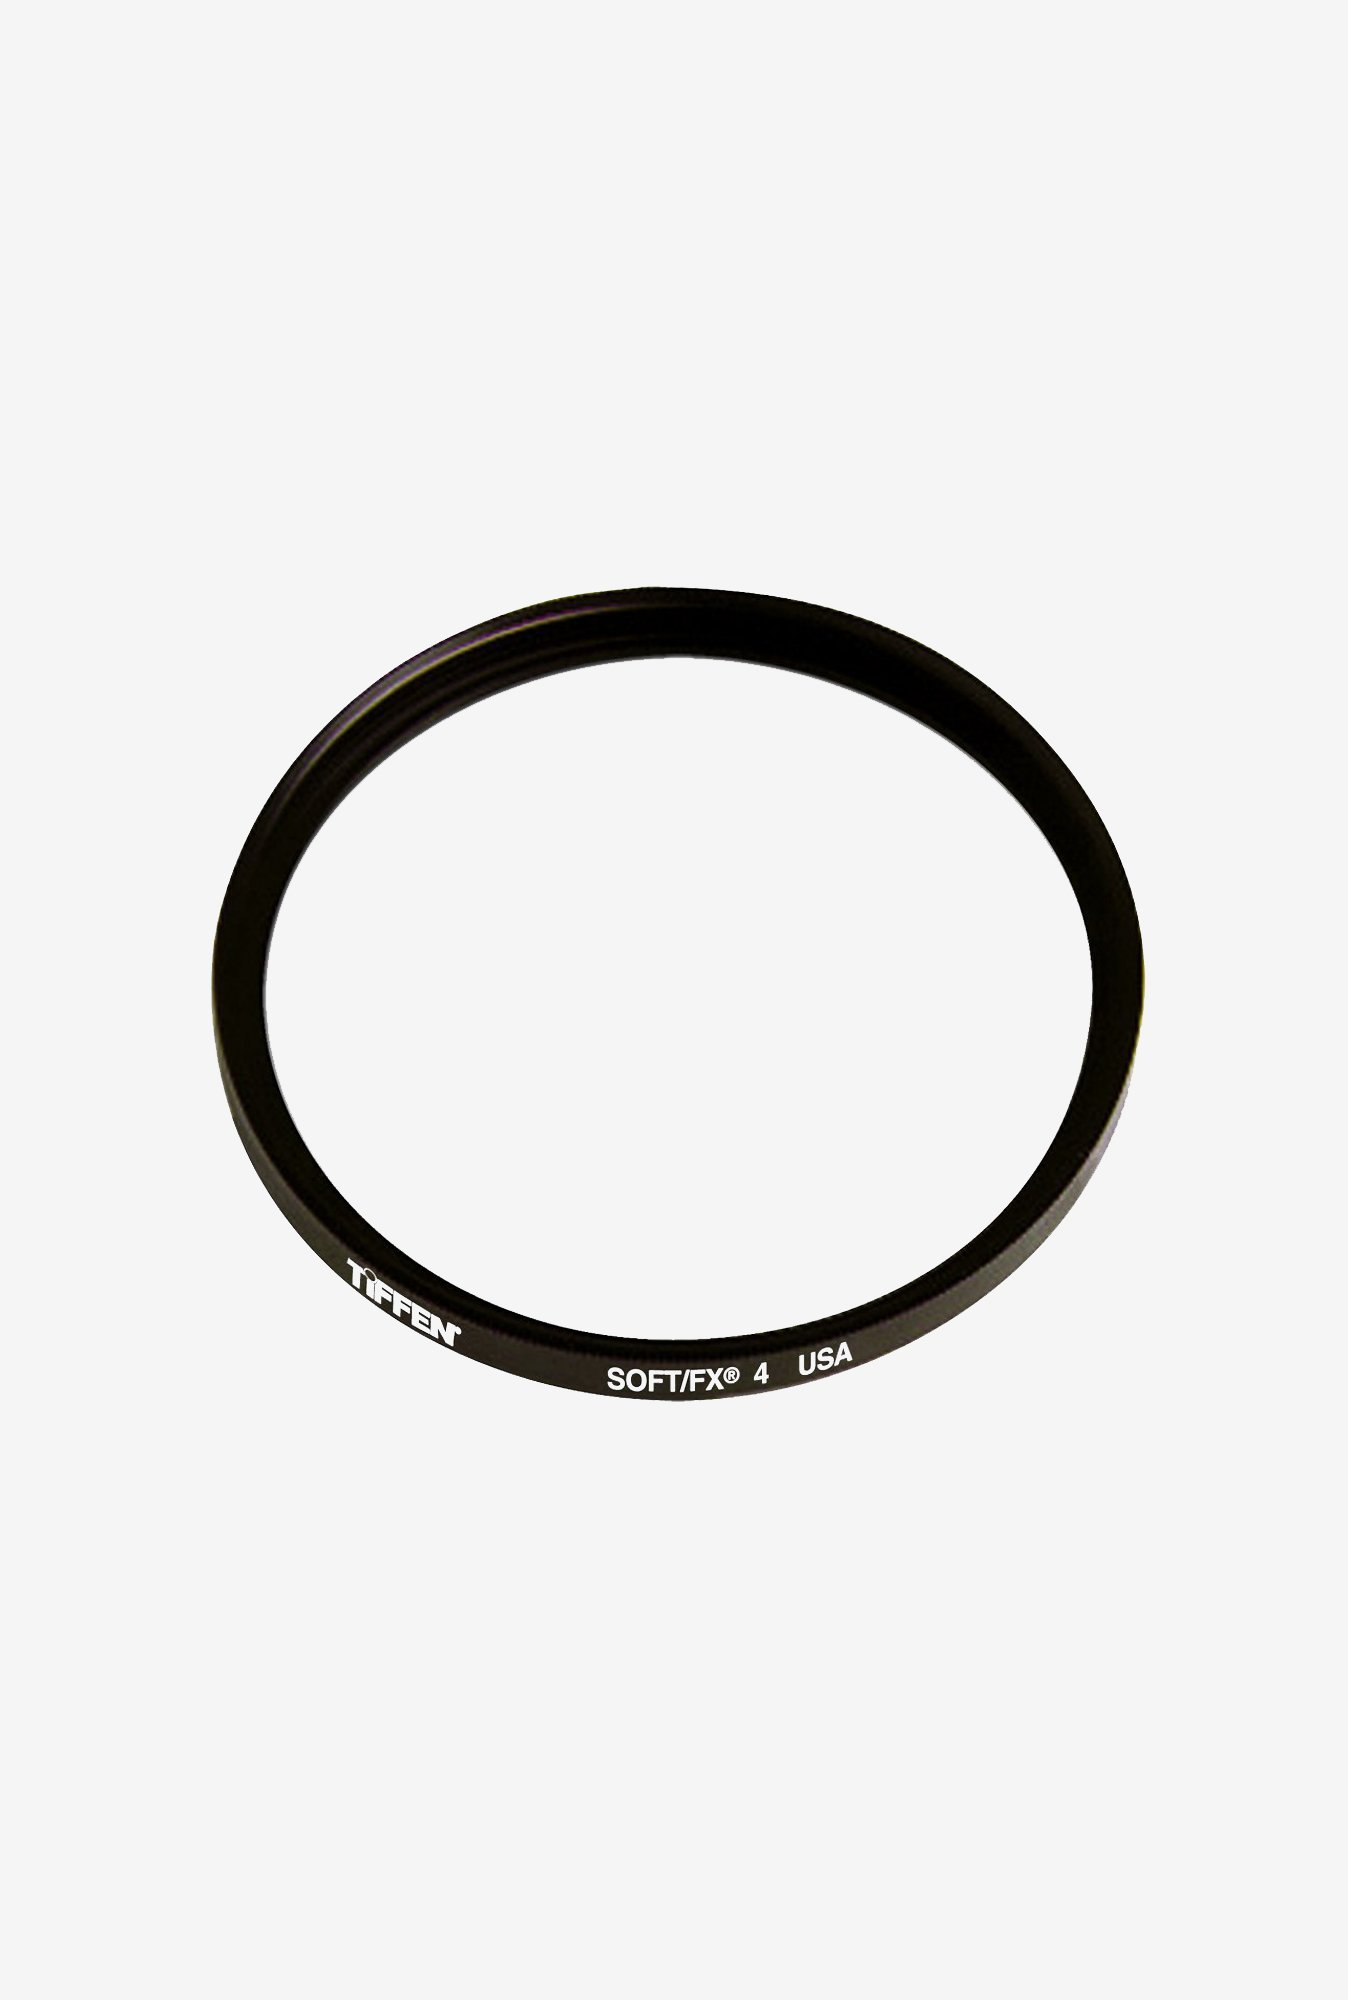 Tiffen 52SFX4 52mm Soft/FX 4 Filter (Black)